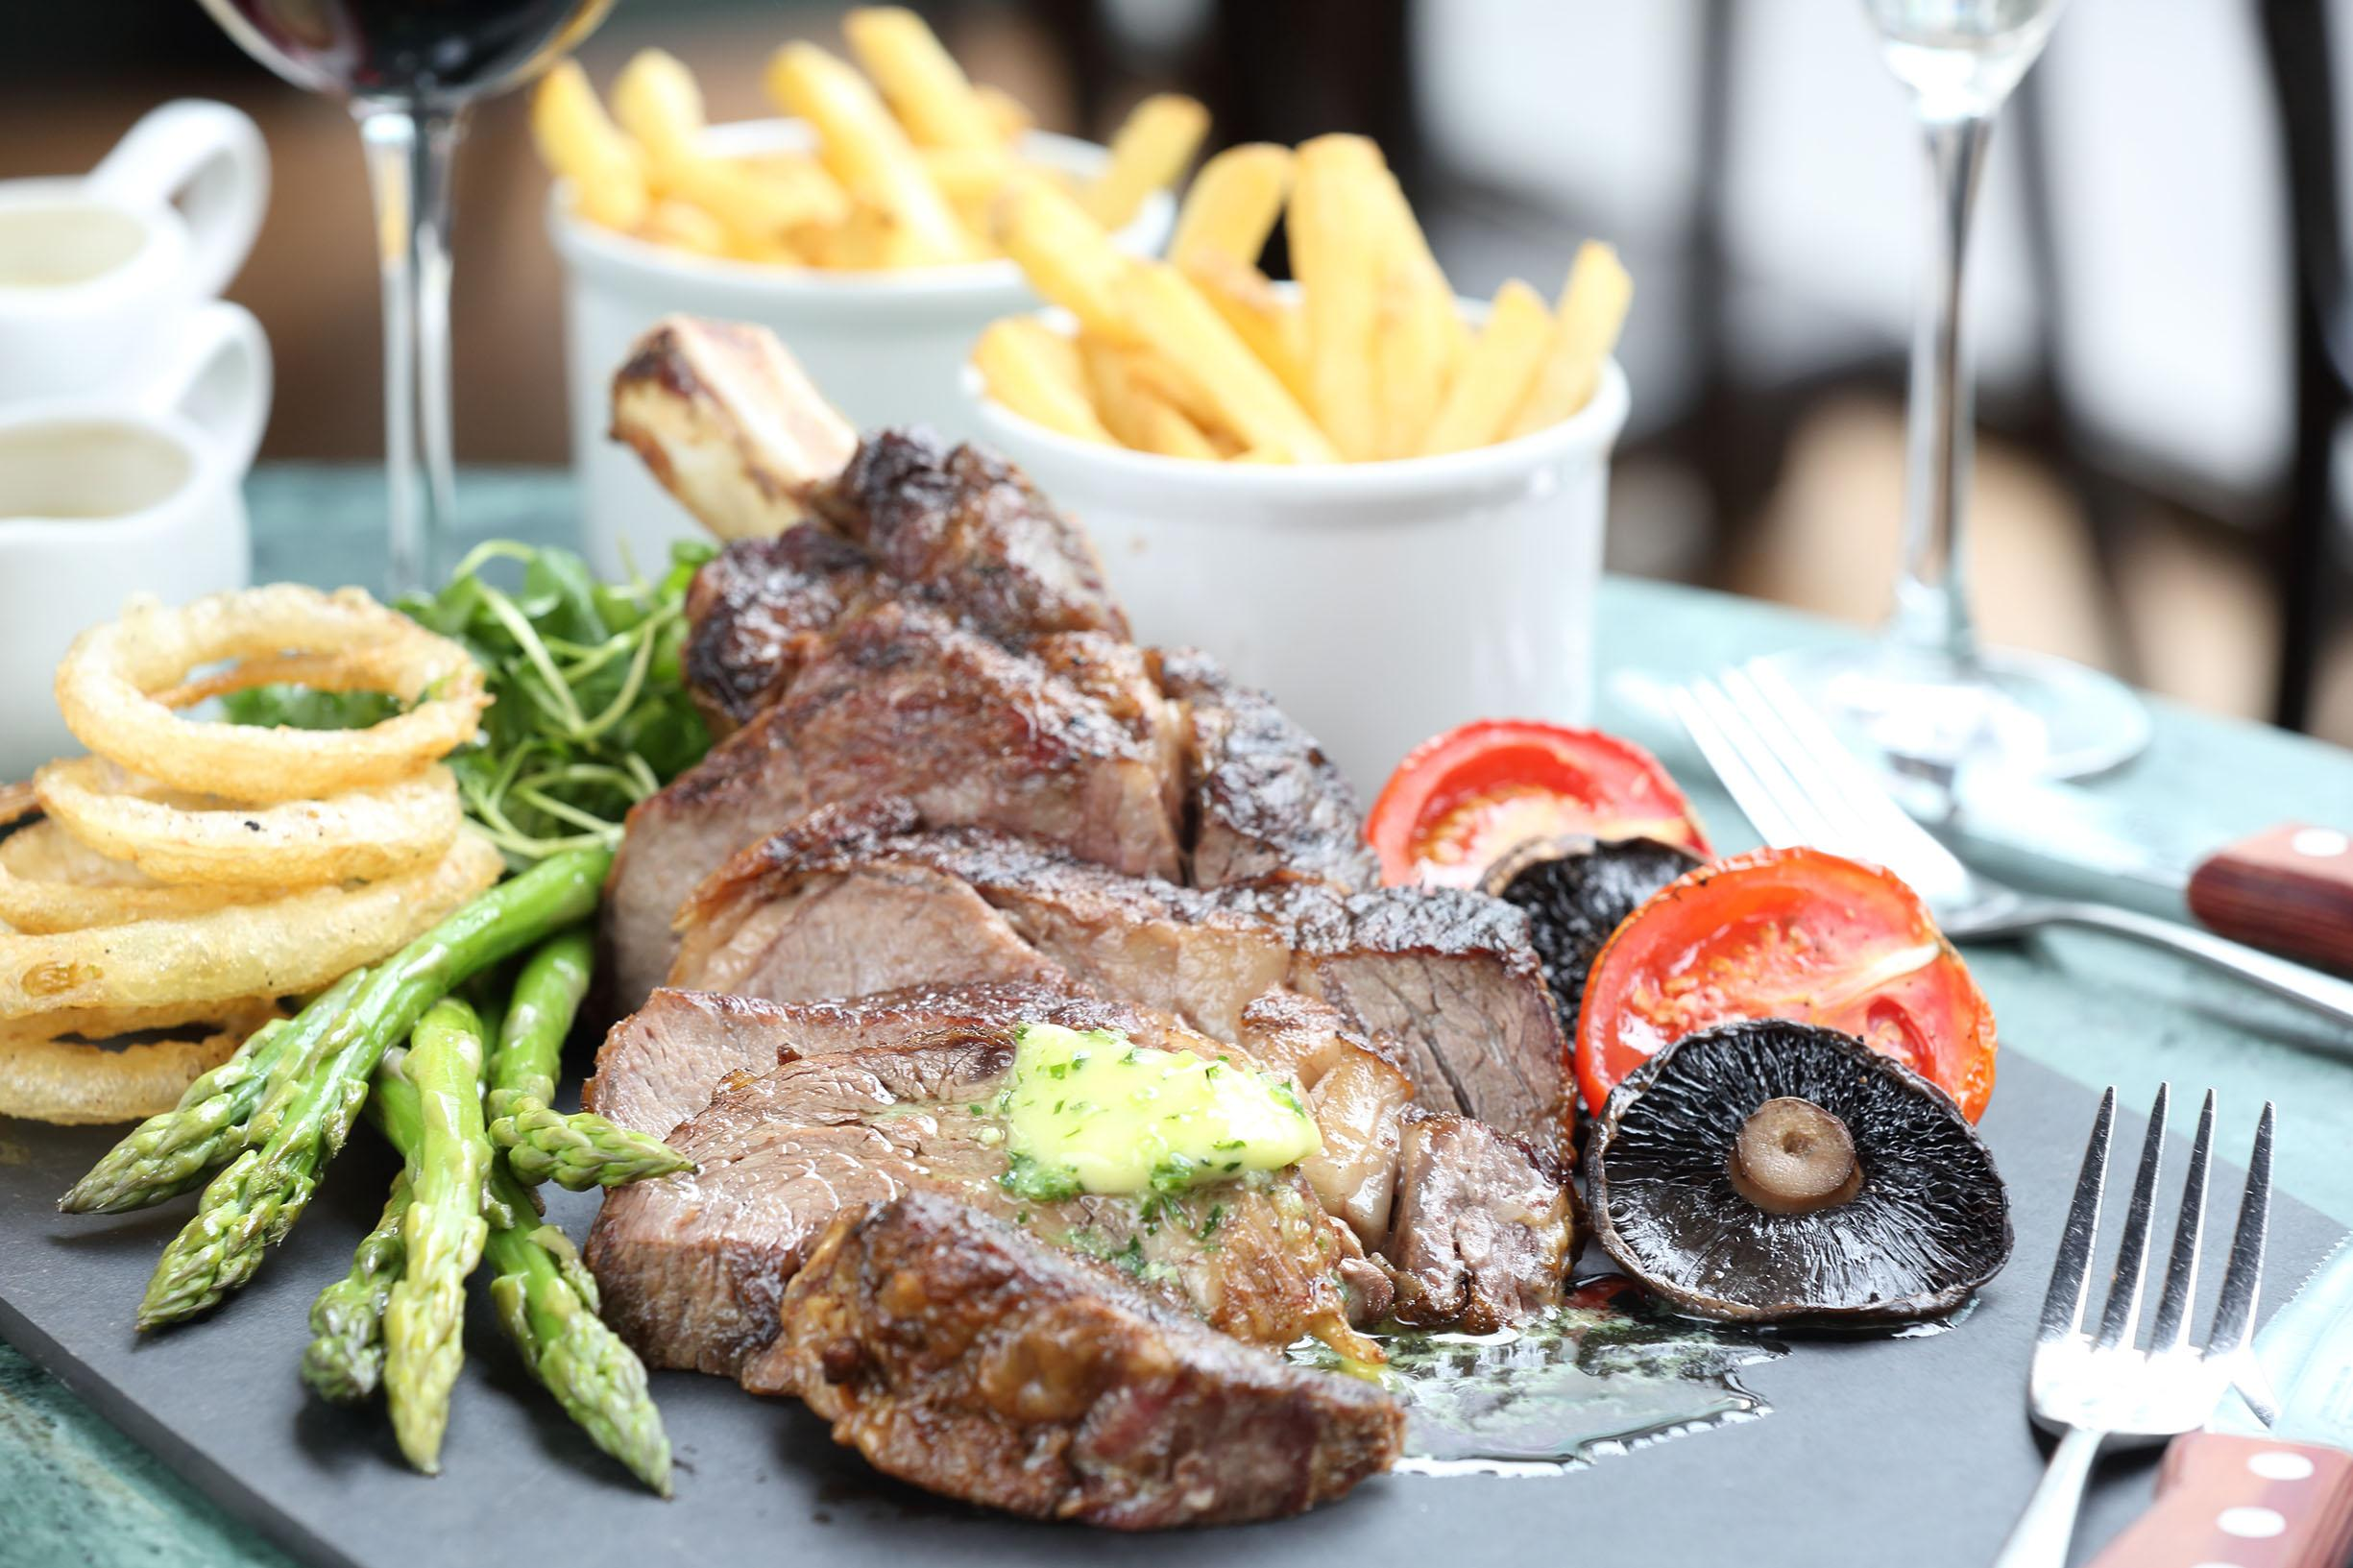 Browns Brasserie & Bar - Manchester - Greater Manchester